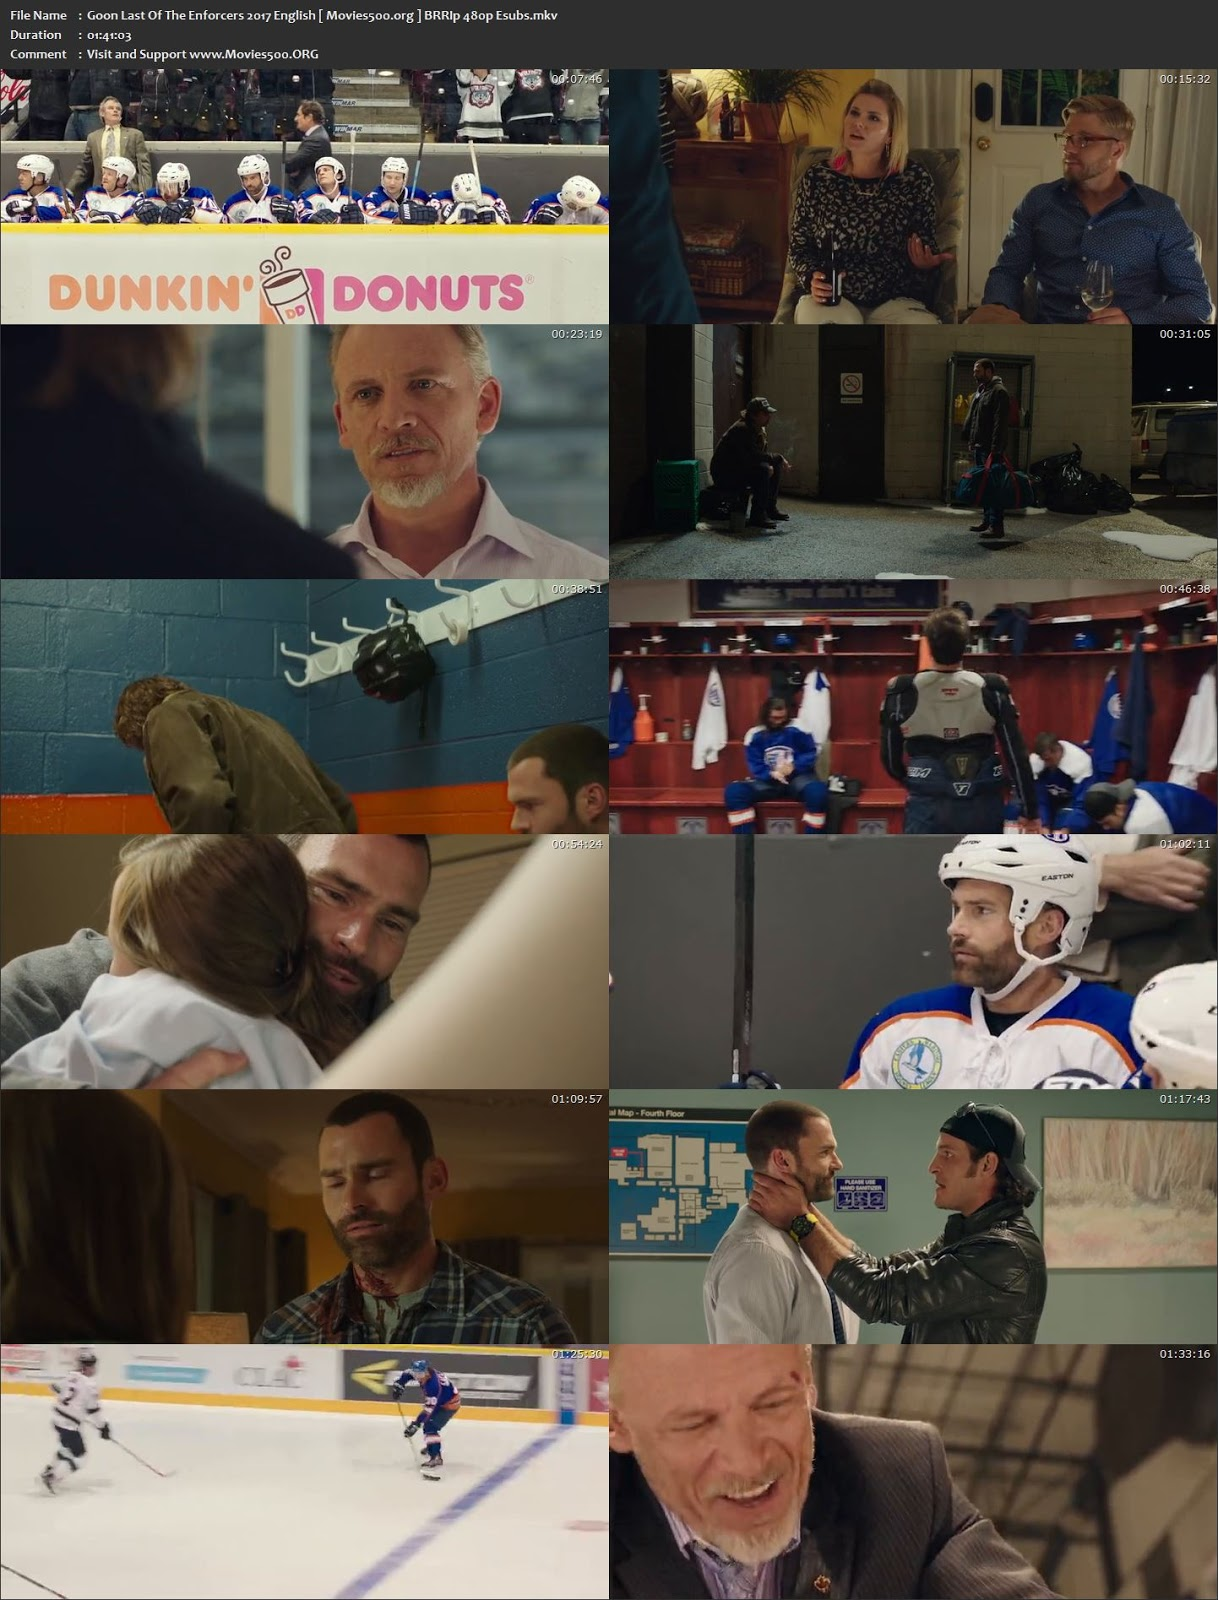 Goon Last of the Enforcers 2017 Hollywood 300MB BluRay 480p at gamezun.com